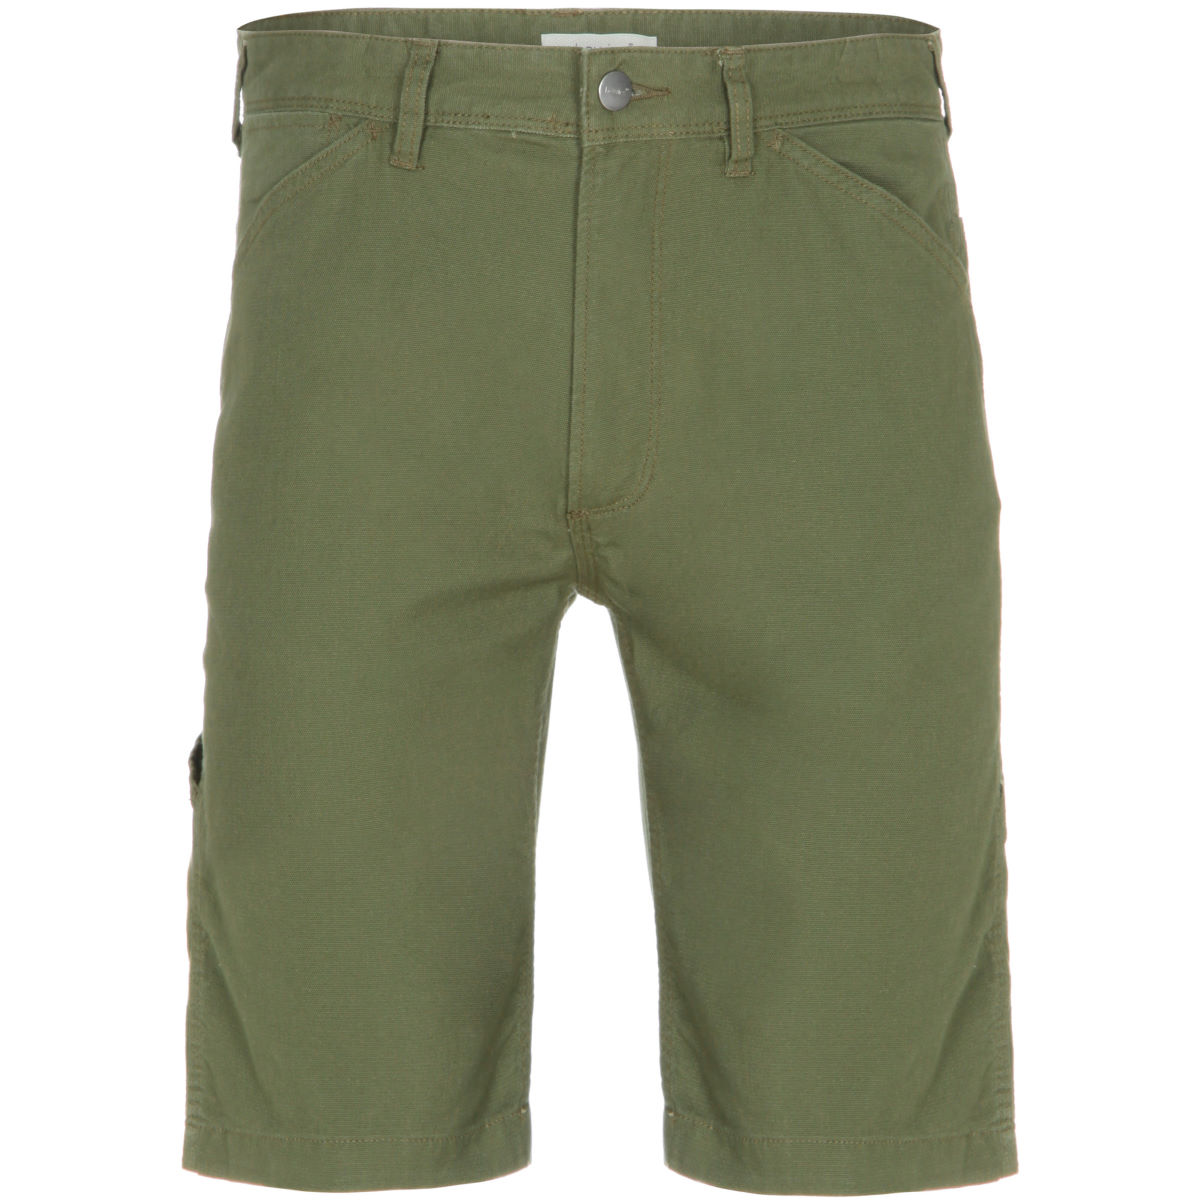 Howies richard shorts casual shorts ivy green ss17 m17shodo12ricuaivy greens 1